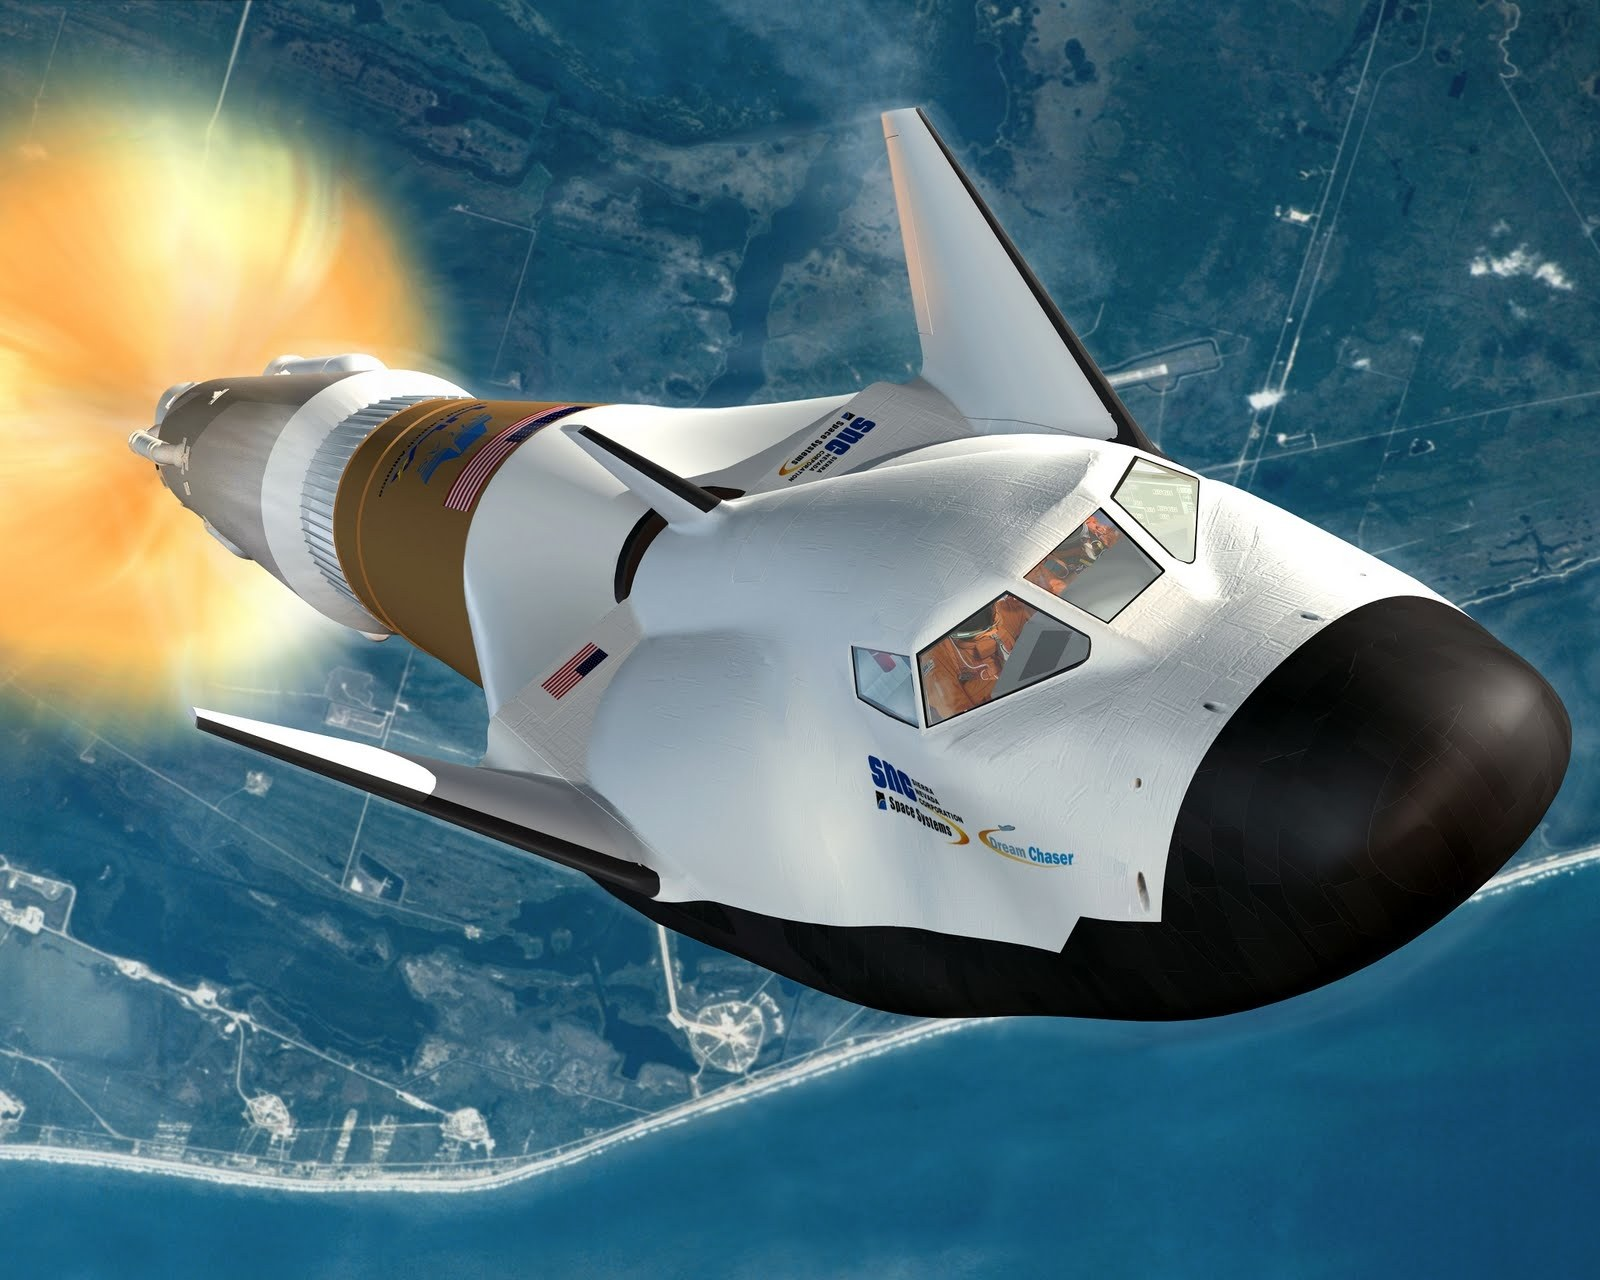 Astronaut-Transporting 'Dream Chaser' Spacecraft Preps for First ...